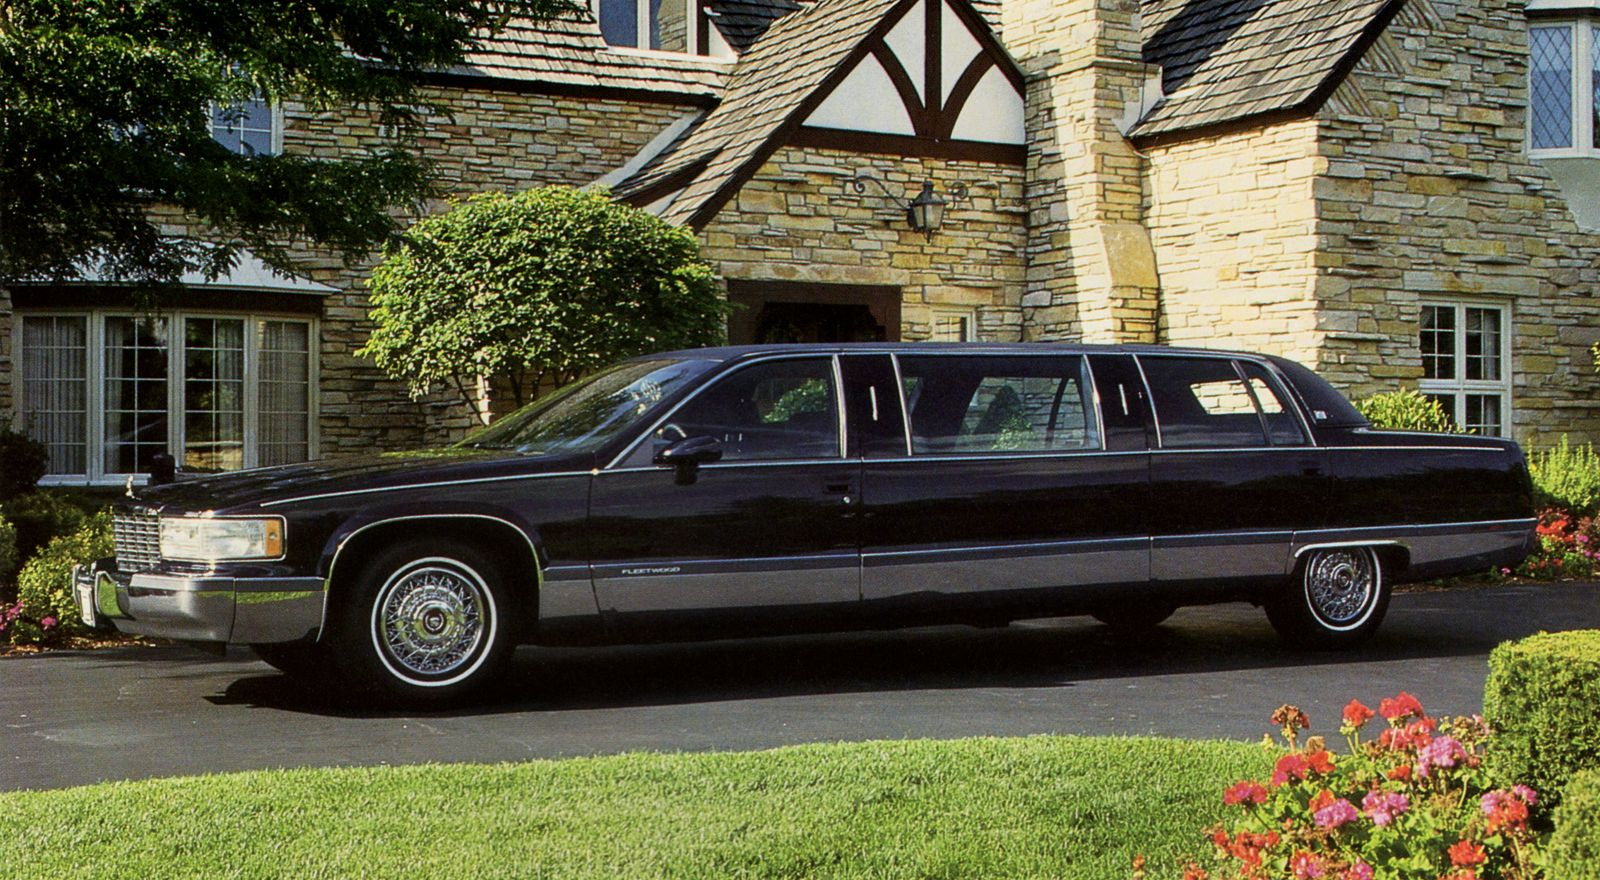 1993 cadillac fleetwood brougham limousine by limousine werks